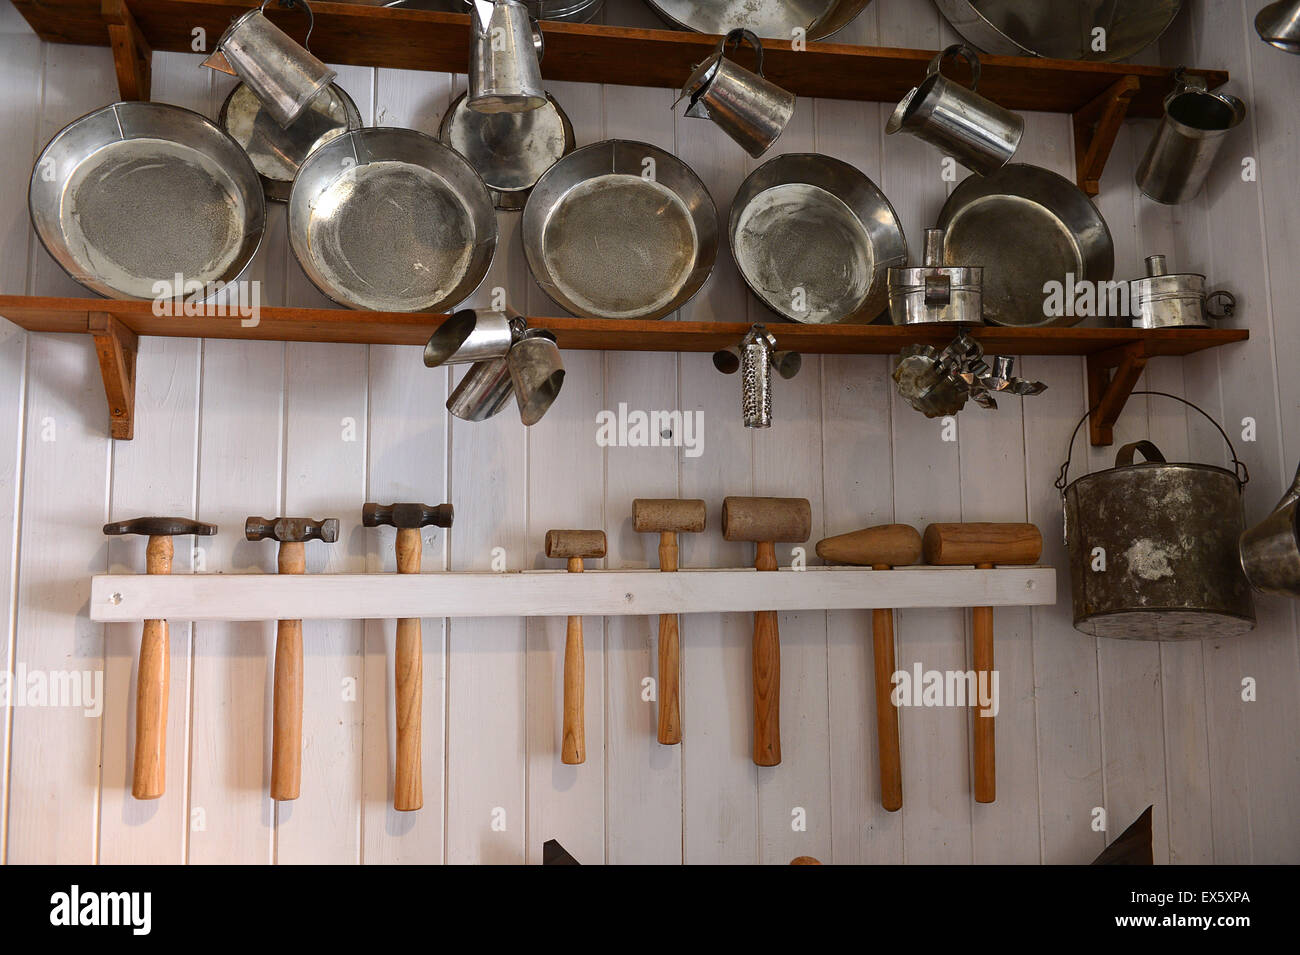 Coffee pots, pans, and jugs on display at tinsmiths shop in the Ulster American Folk Park - Stock Image